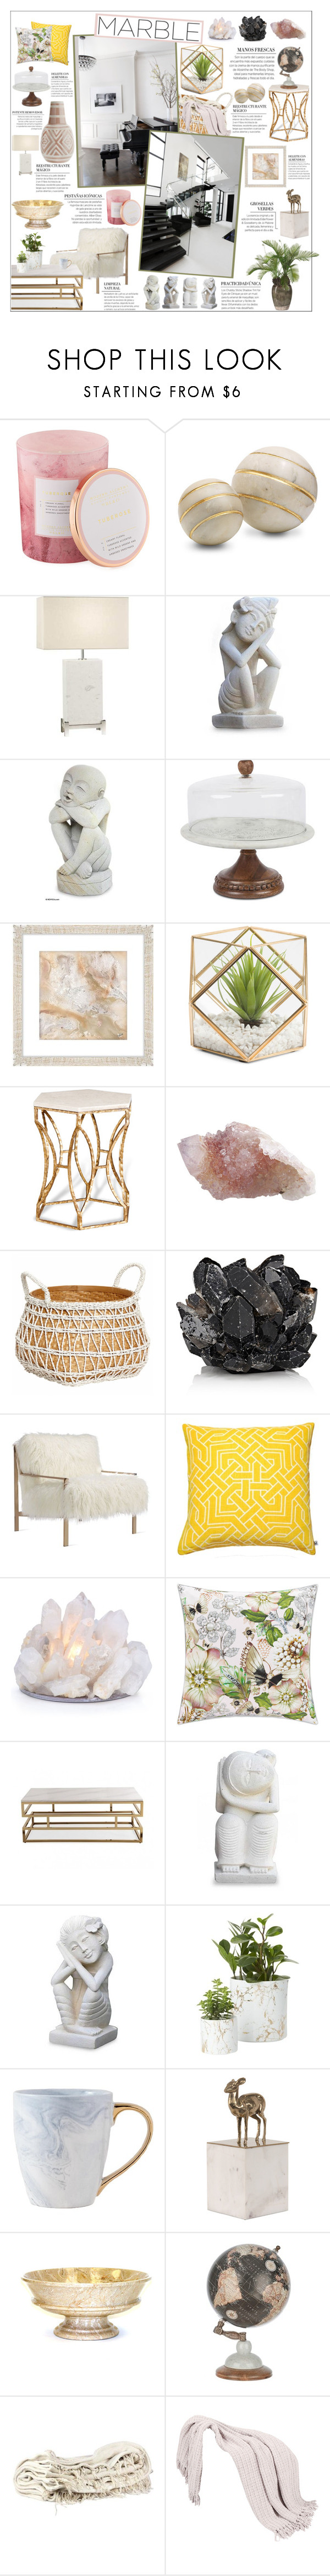 """Marble"" by honey-beans-xo ❤ liked on Polyvore featuring interior, interiors, interior design, home, home decor, interior decorating, D.L. & Co., Fine Art Lamps, NOVICA and GG Collection"